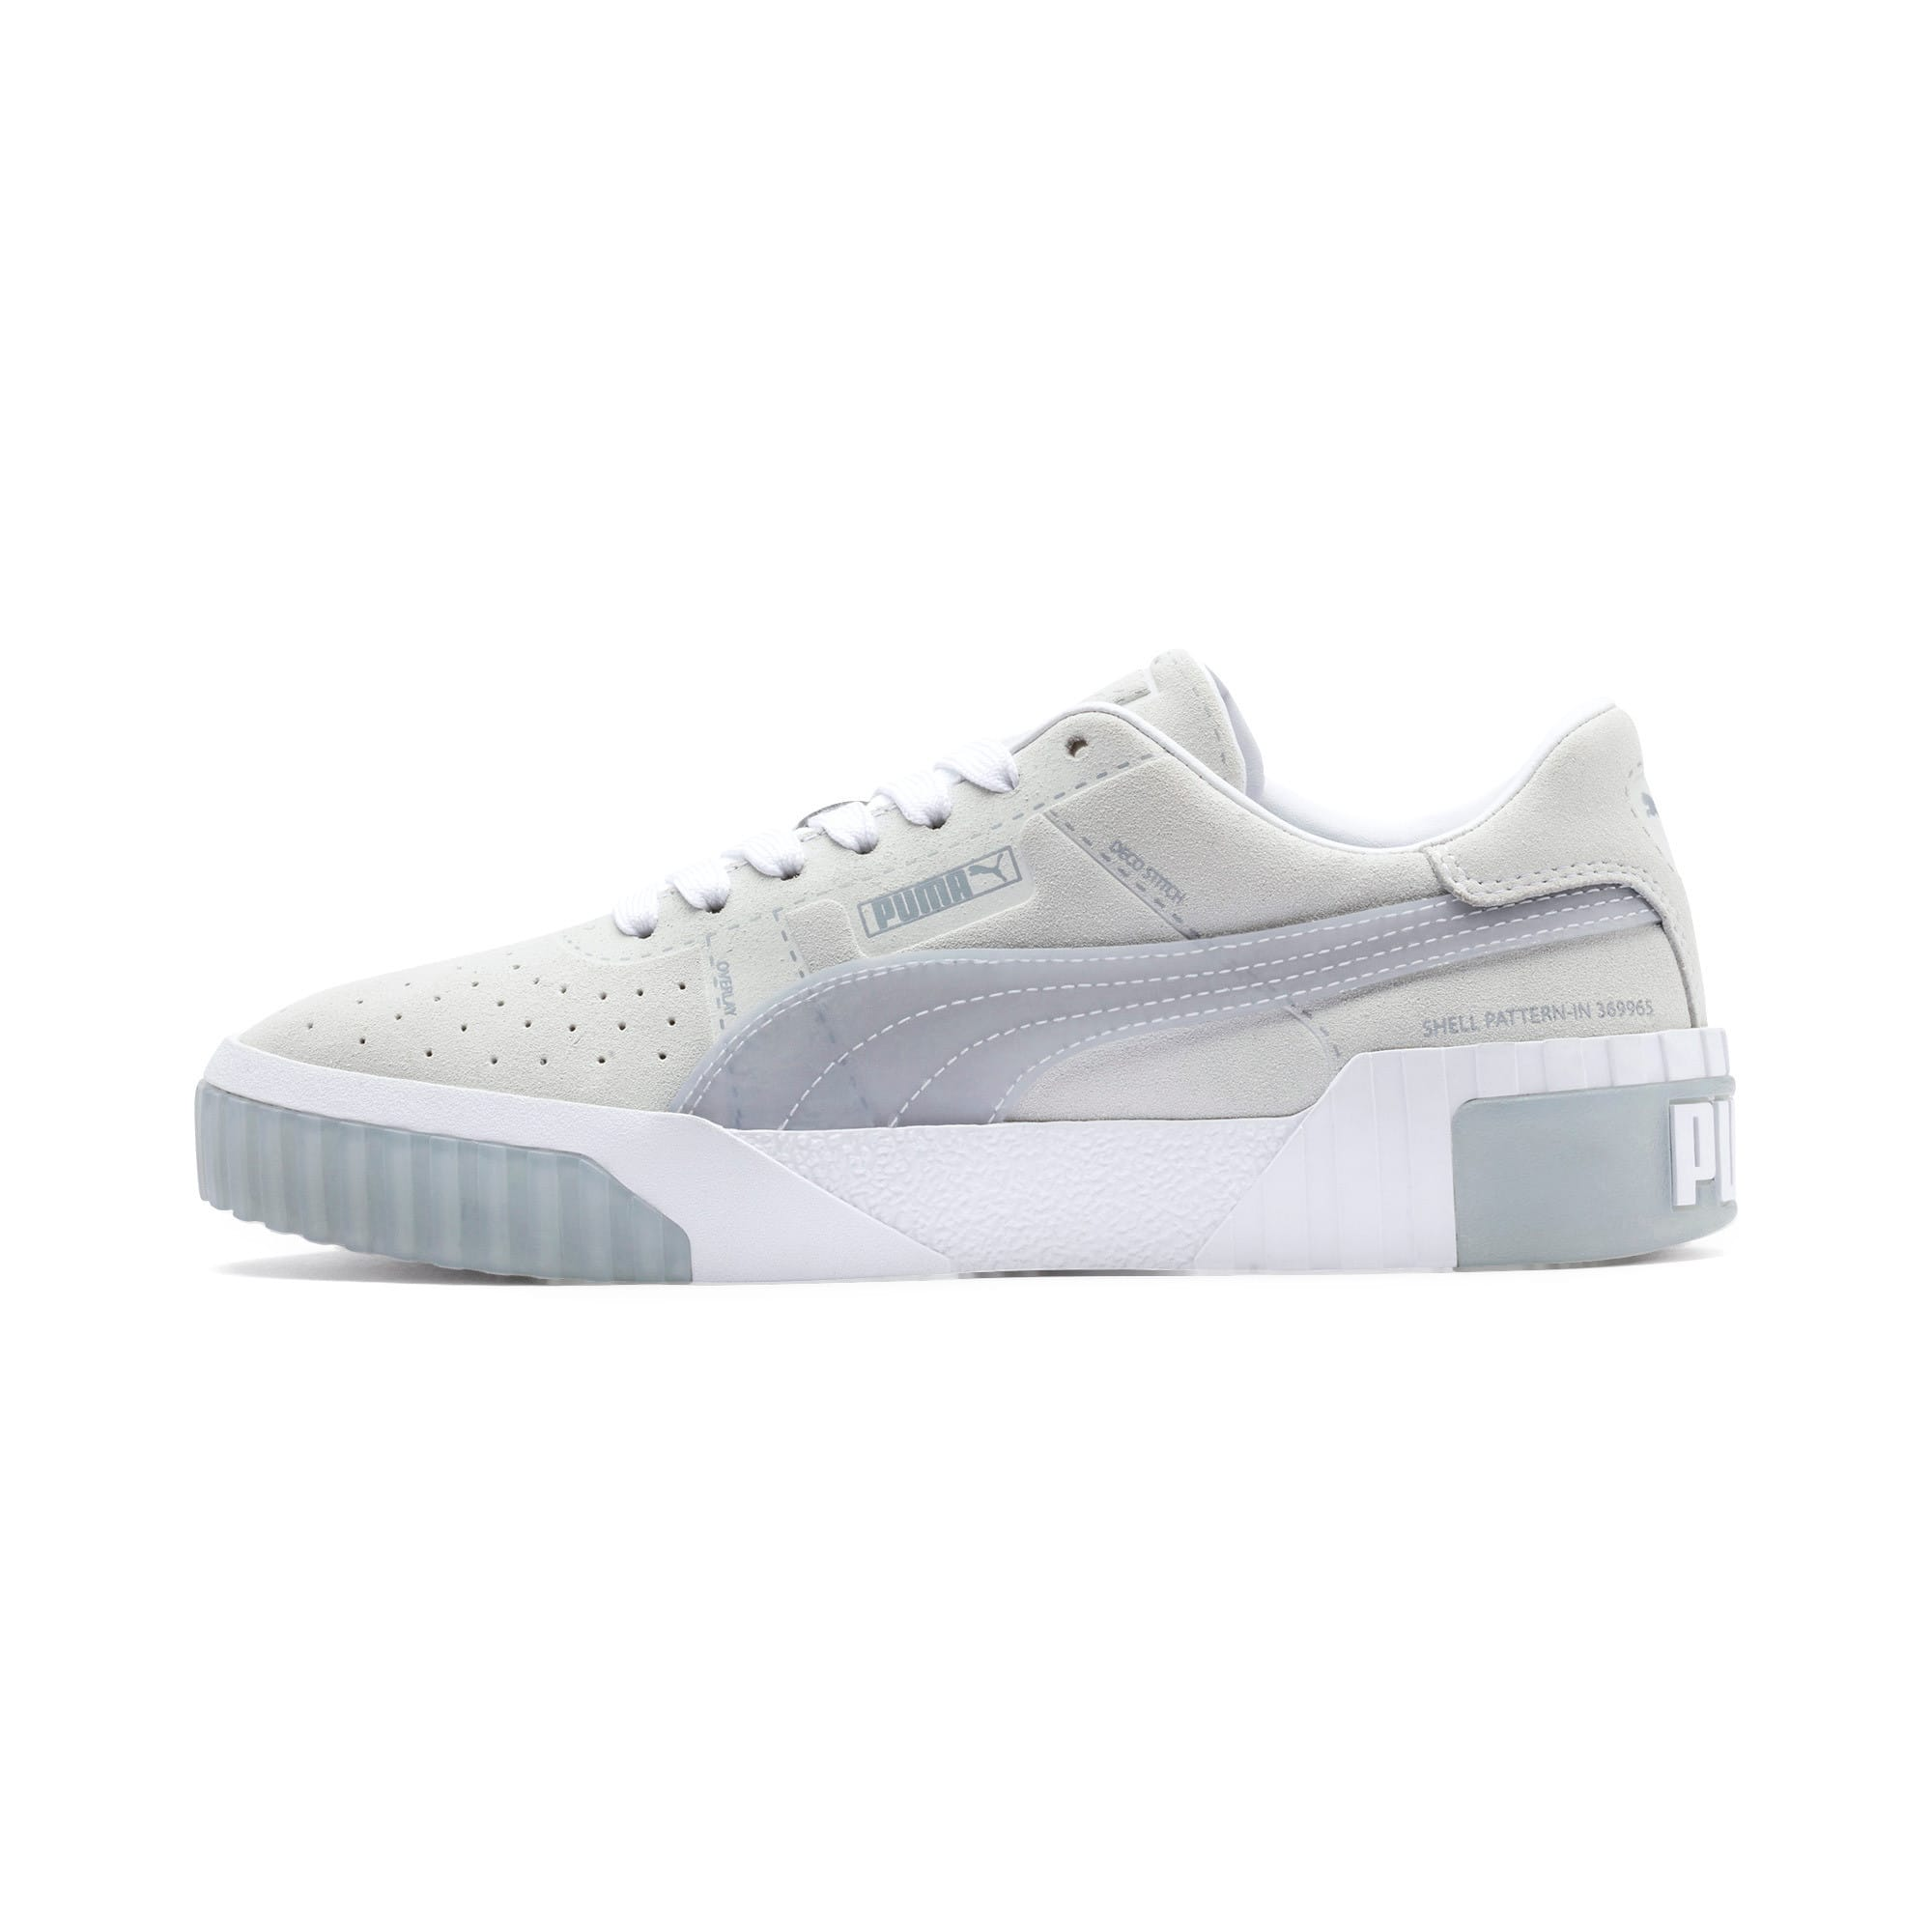 Thumbnail 1 of Cali Patternmaster Women's Trainers, Puma White-Quarry, medium